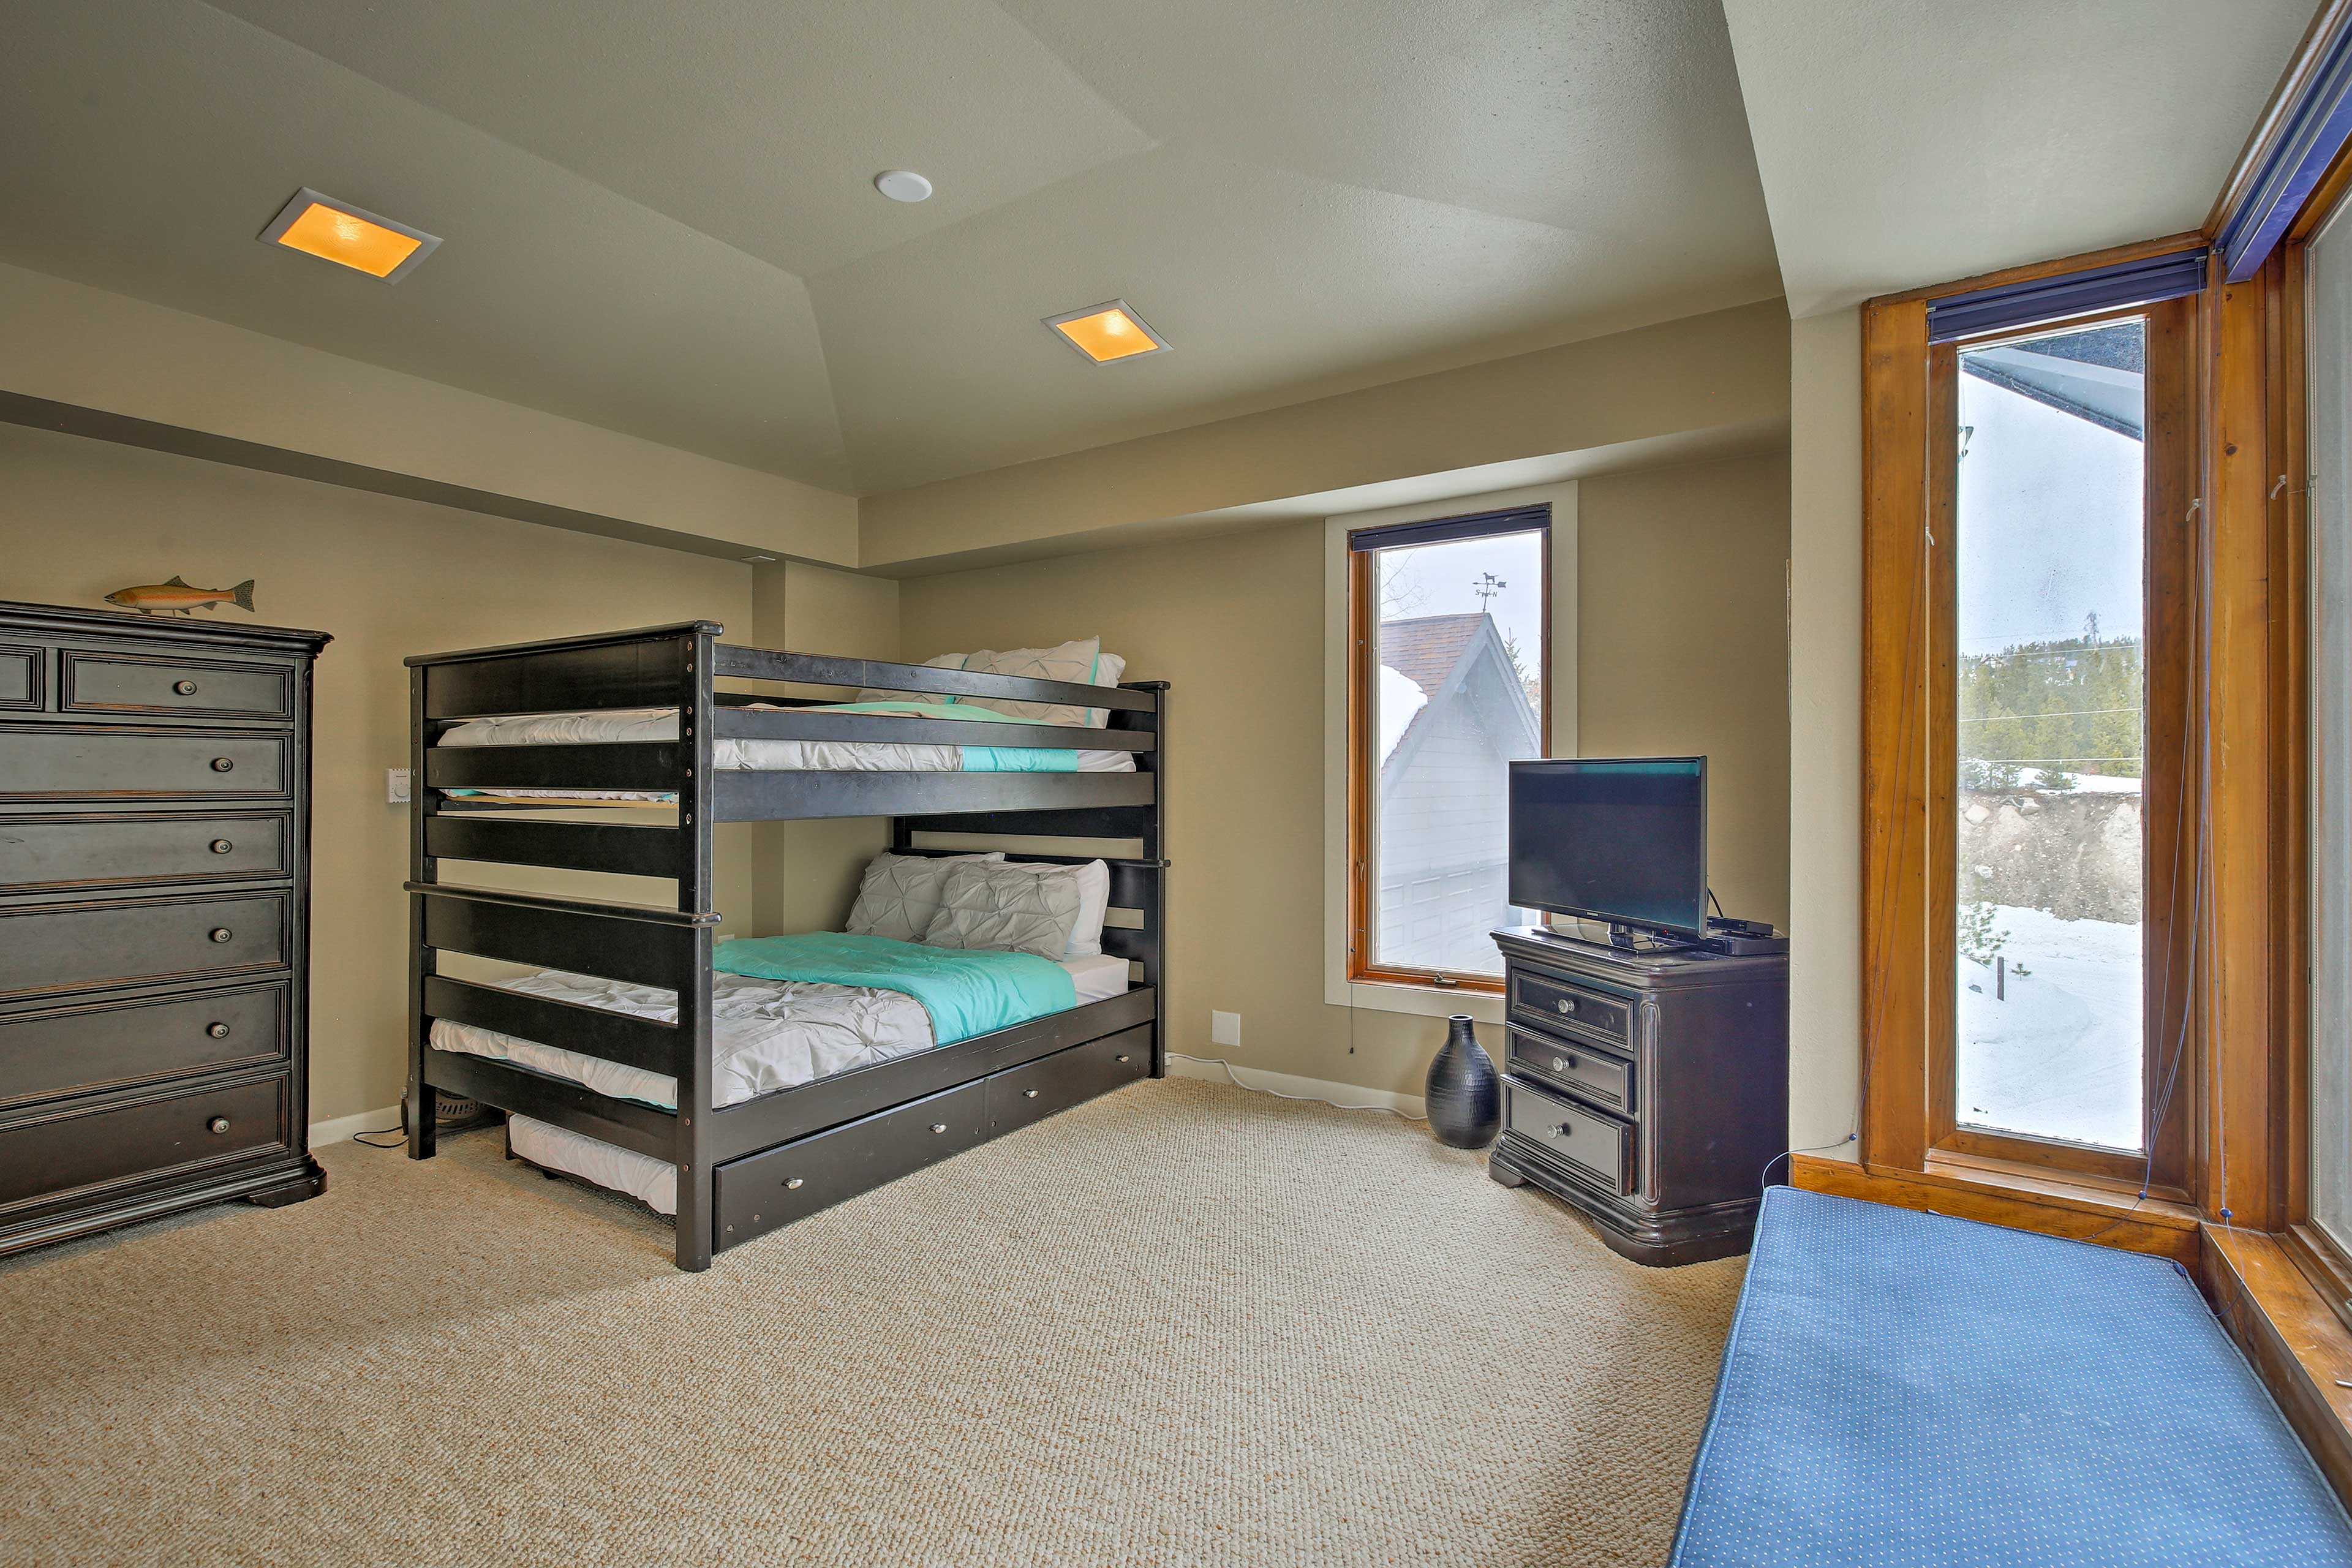 All 4 bedrooms provide flat-screen TVs so everyone can watch a show in bed!